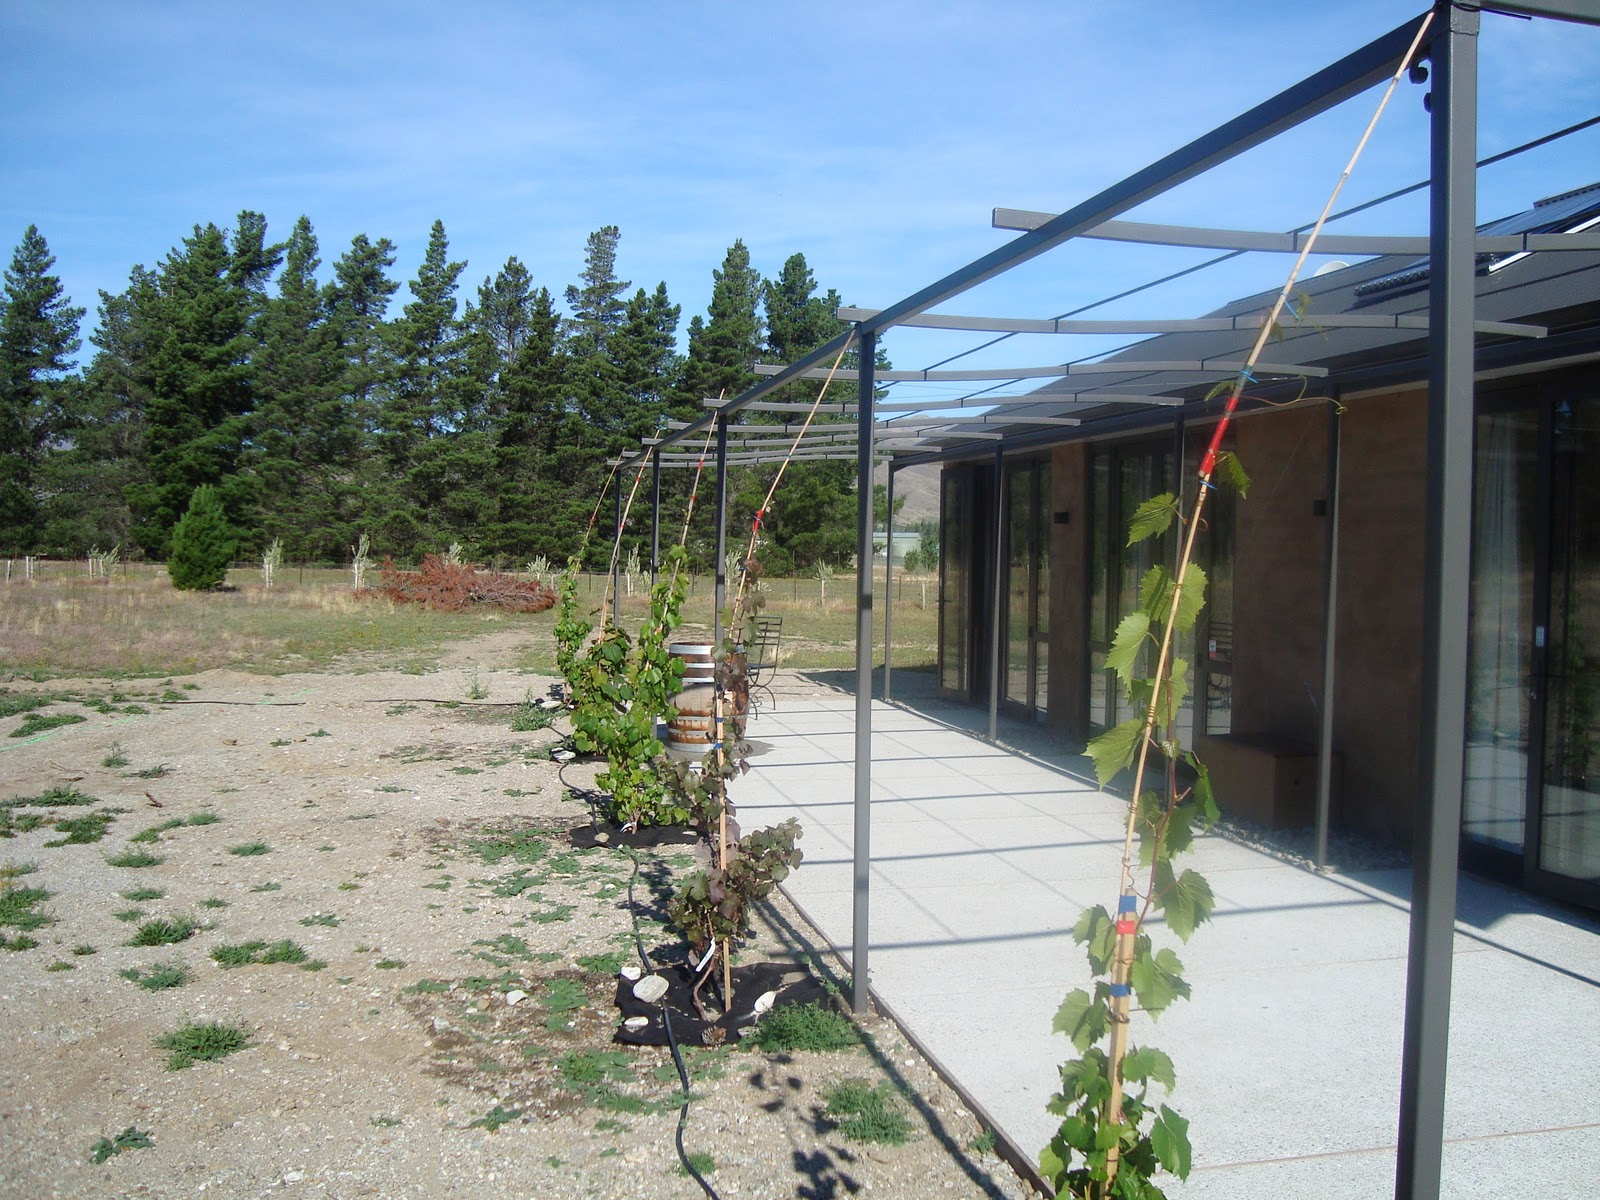 The Field of Gold: Growing Shade. Vines on the Pergola.